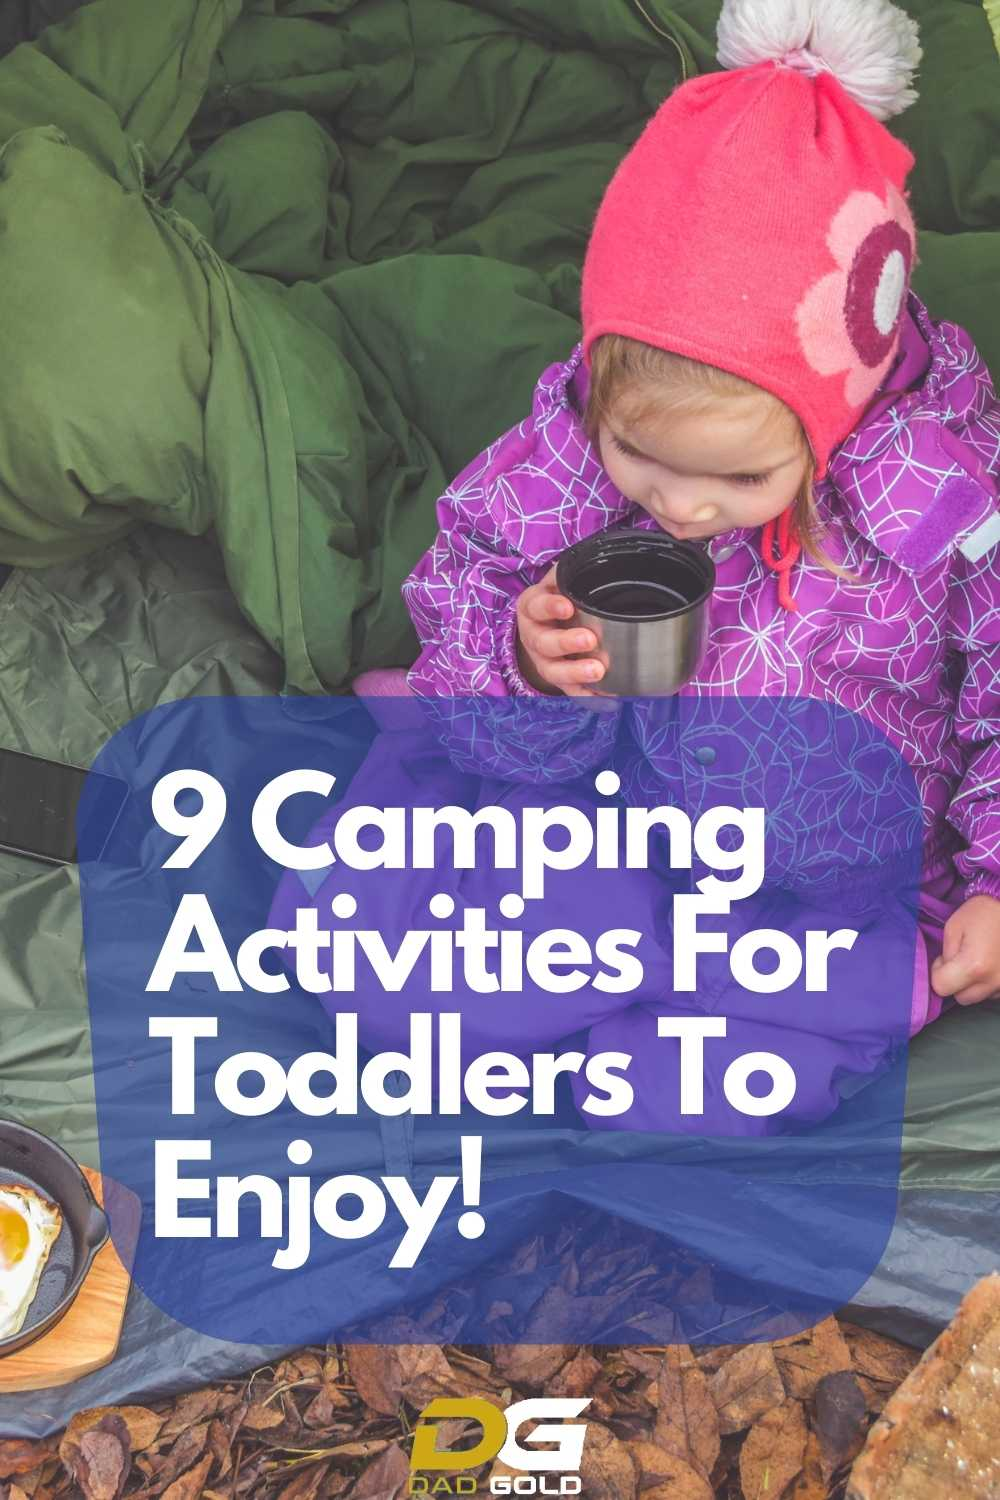 9 Camping Activities For Toddlers